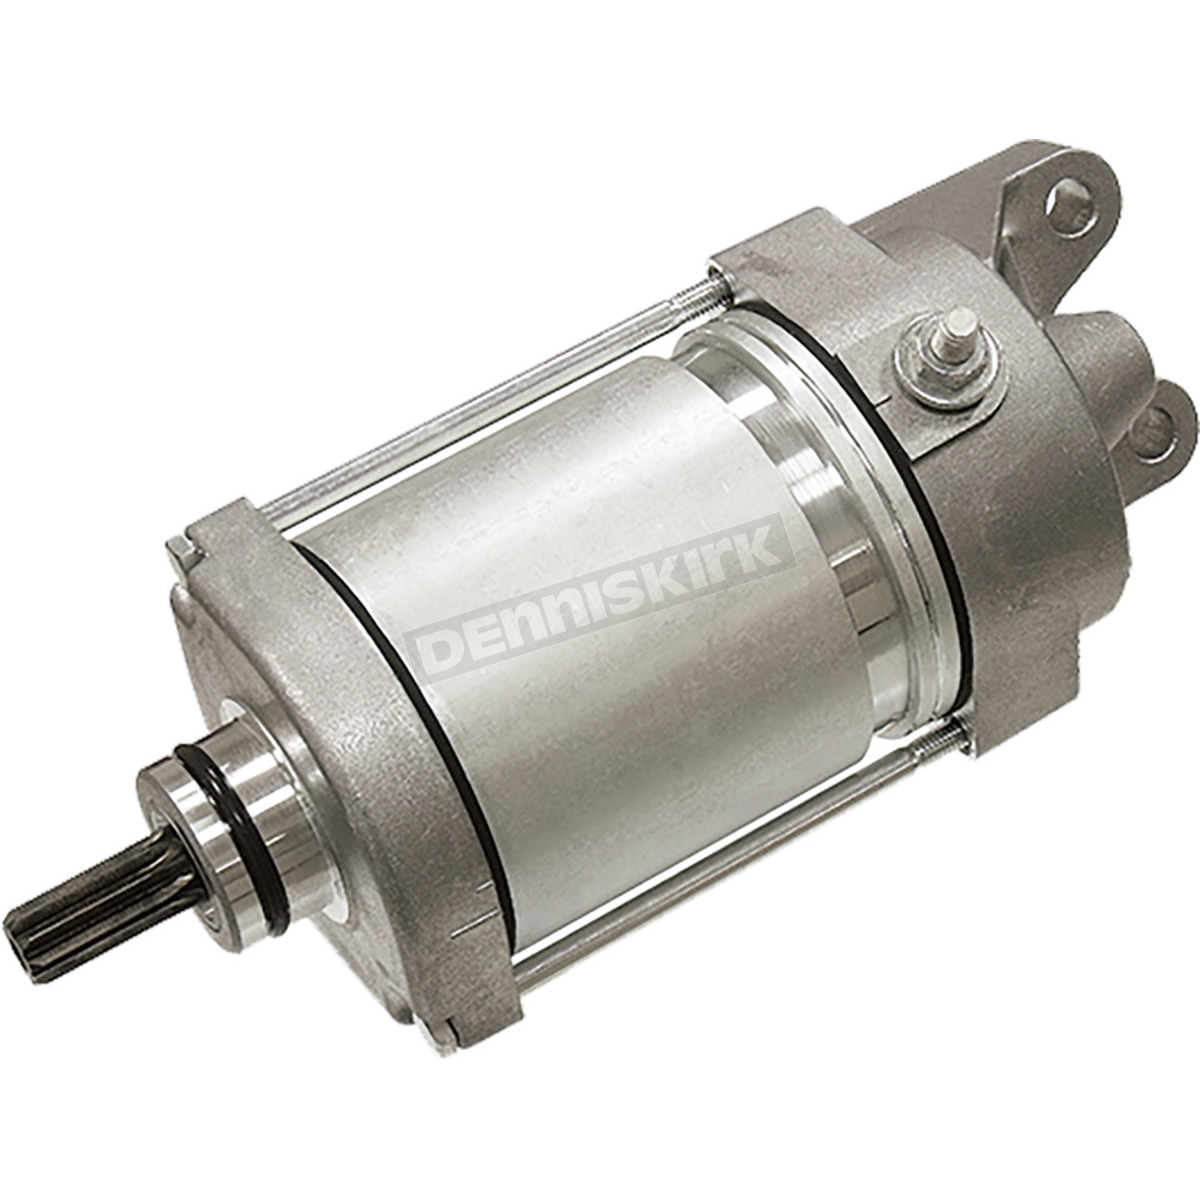 Sports parts inc starter motor sm 01331 snowmobile for Nhd inc motor starter